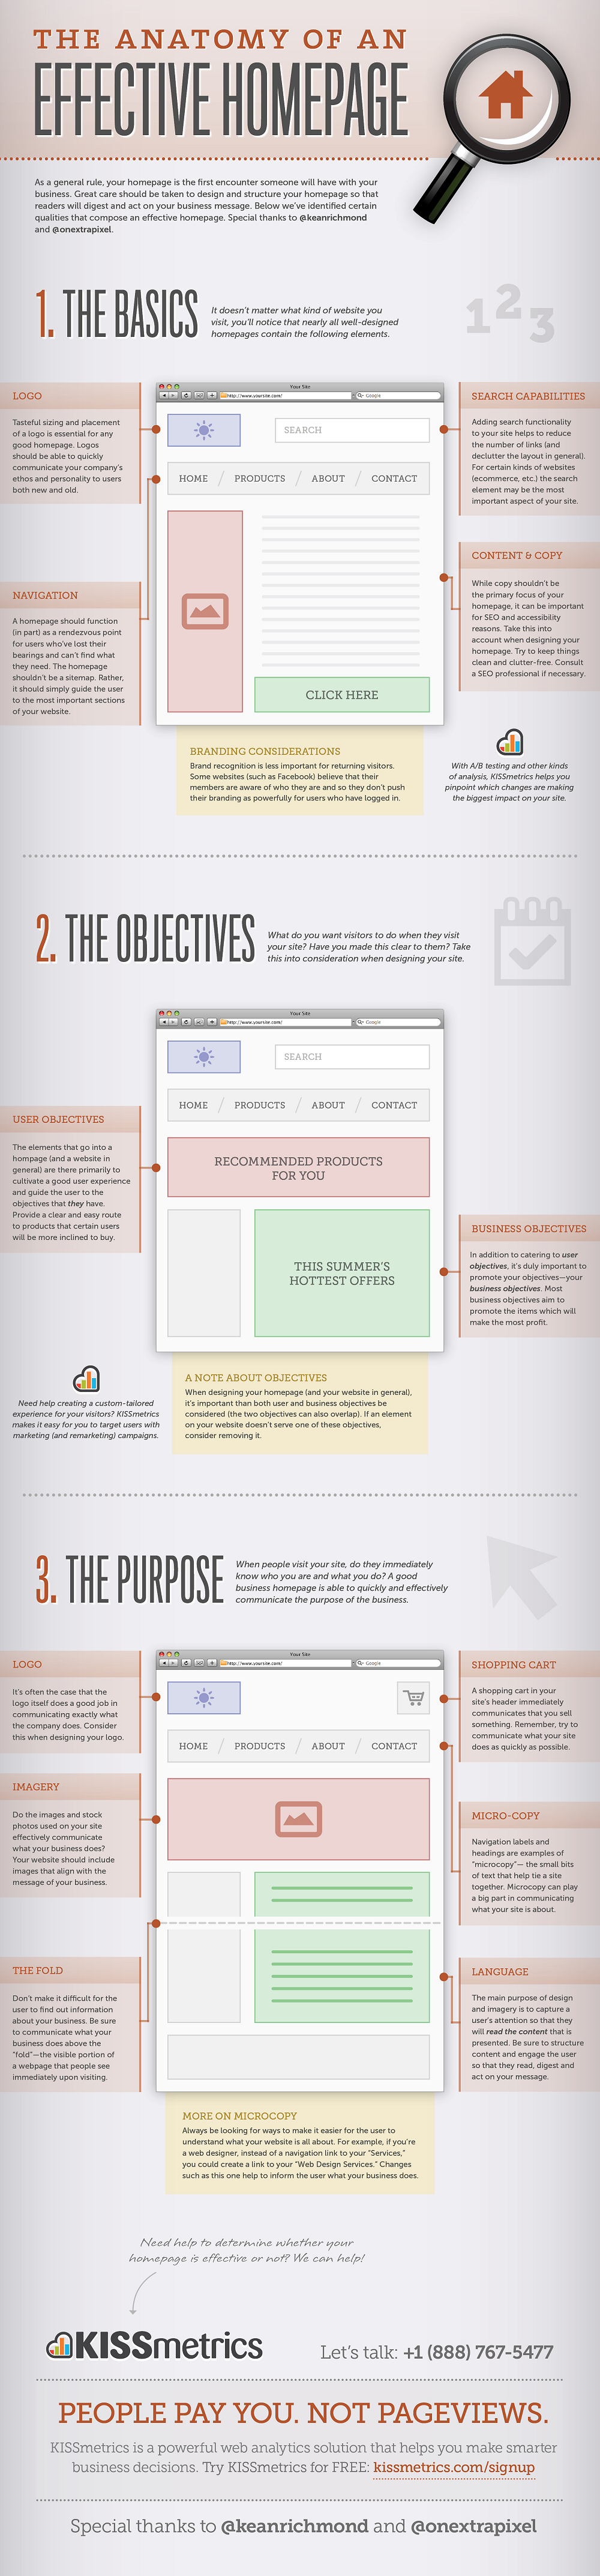 The Anatomy of a Good Homepage #Infographic | Social MagnetsSocial Magnets